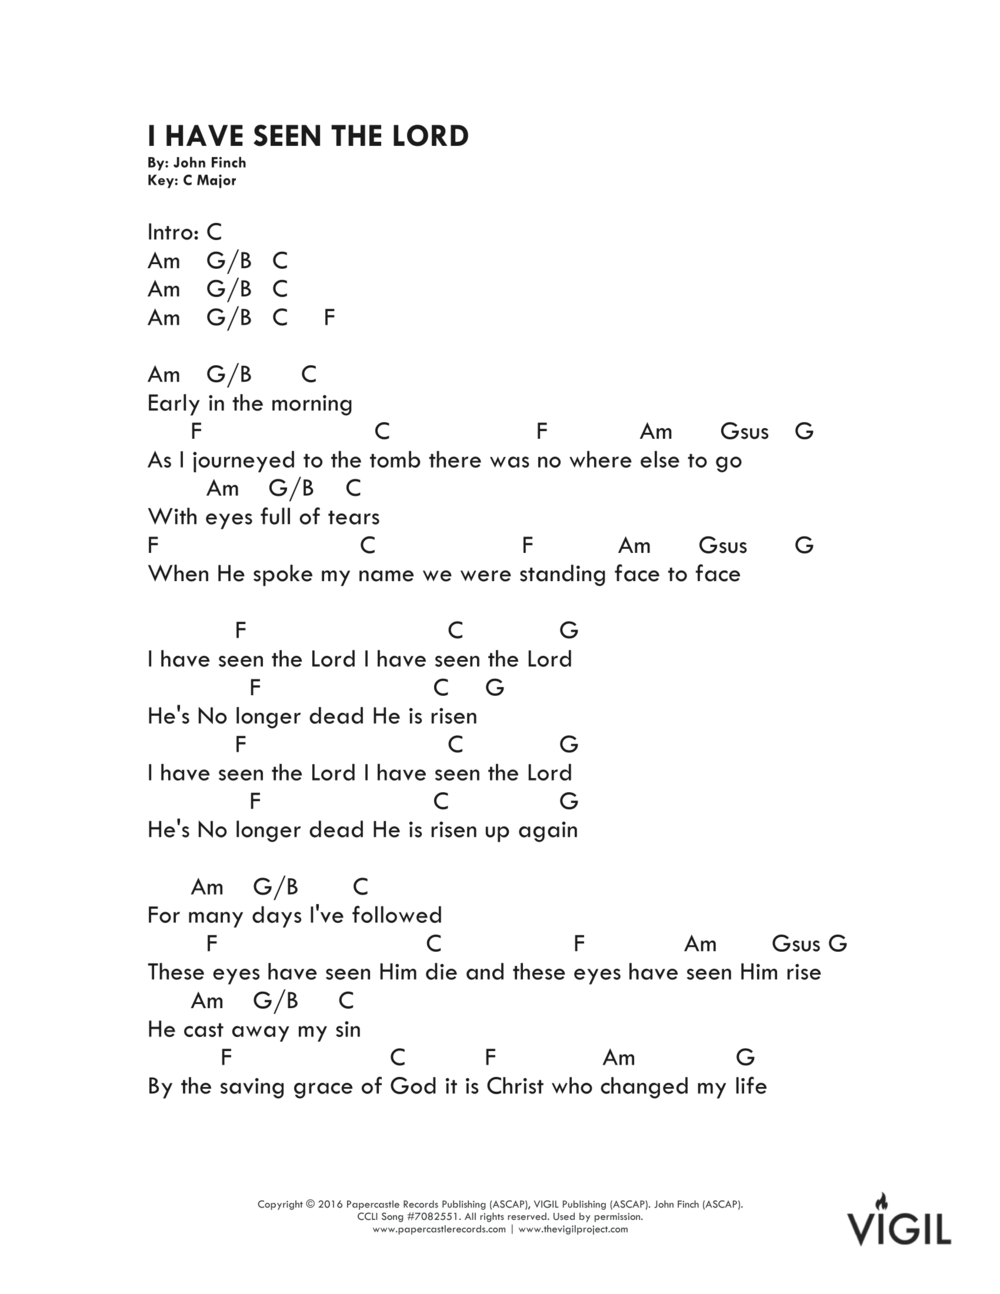 VIGIL S1 - I Have Seen The Lord (C Major)-1.png